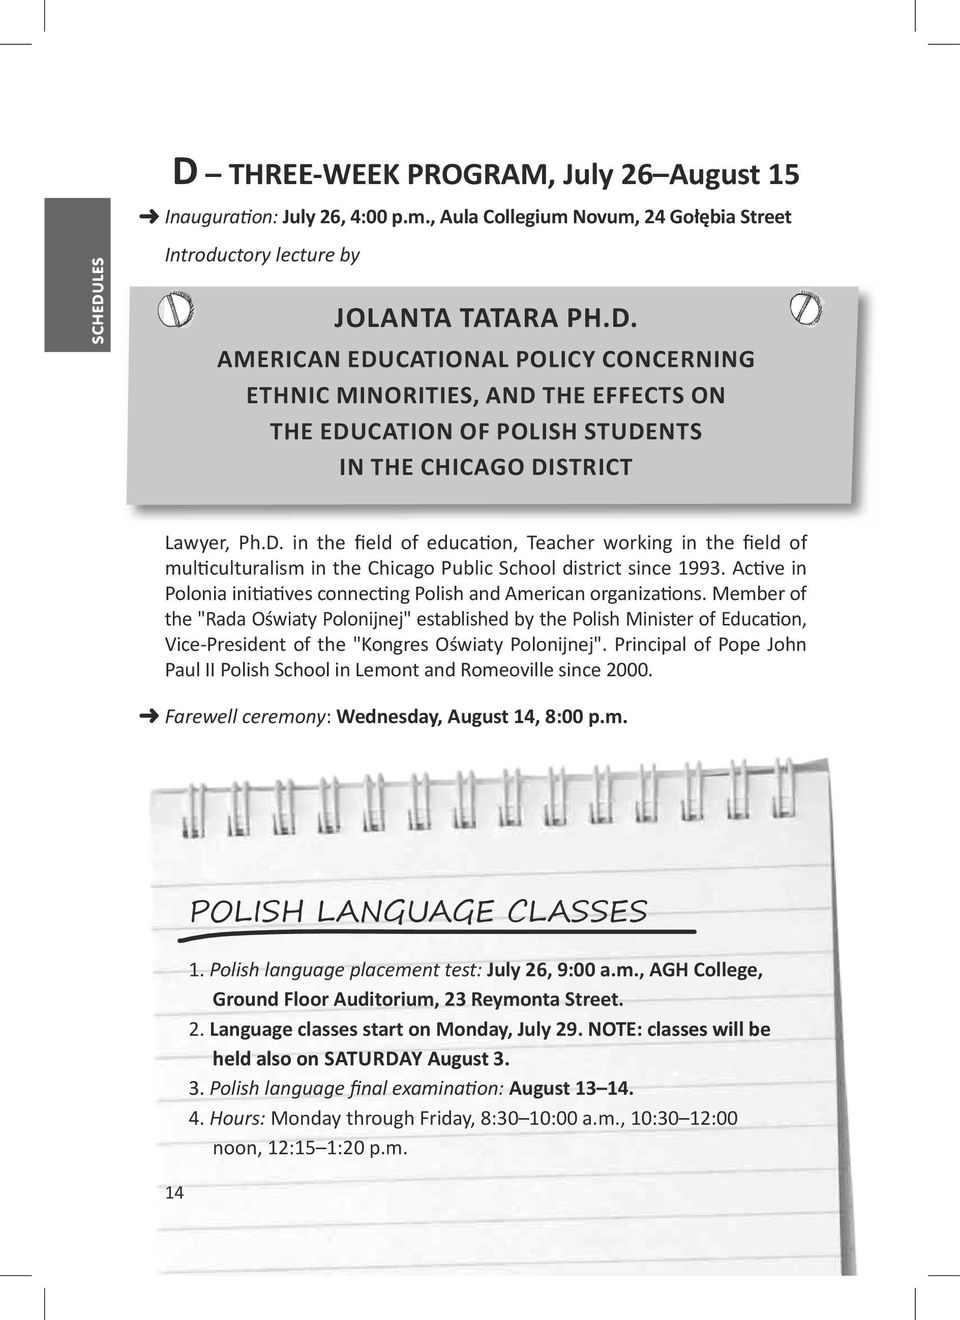 Active in Polonia initiatives connecting Polish and American organizations.